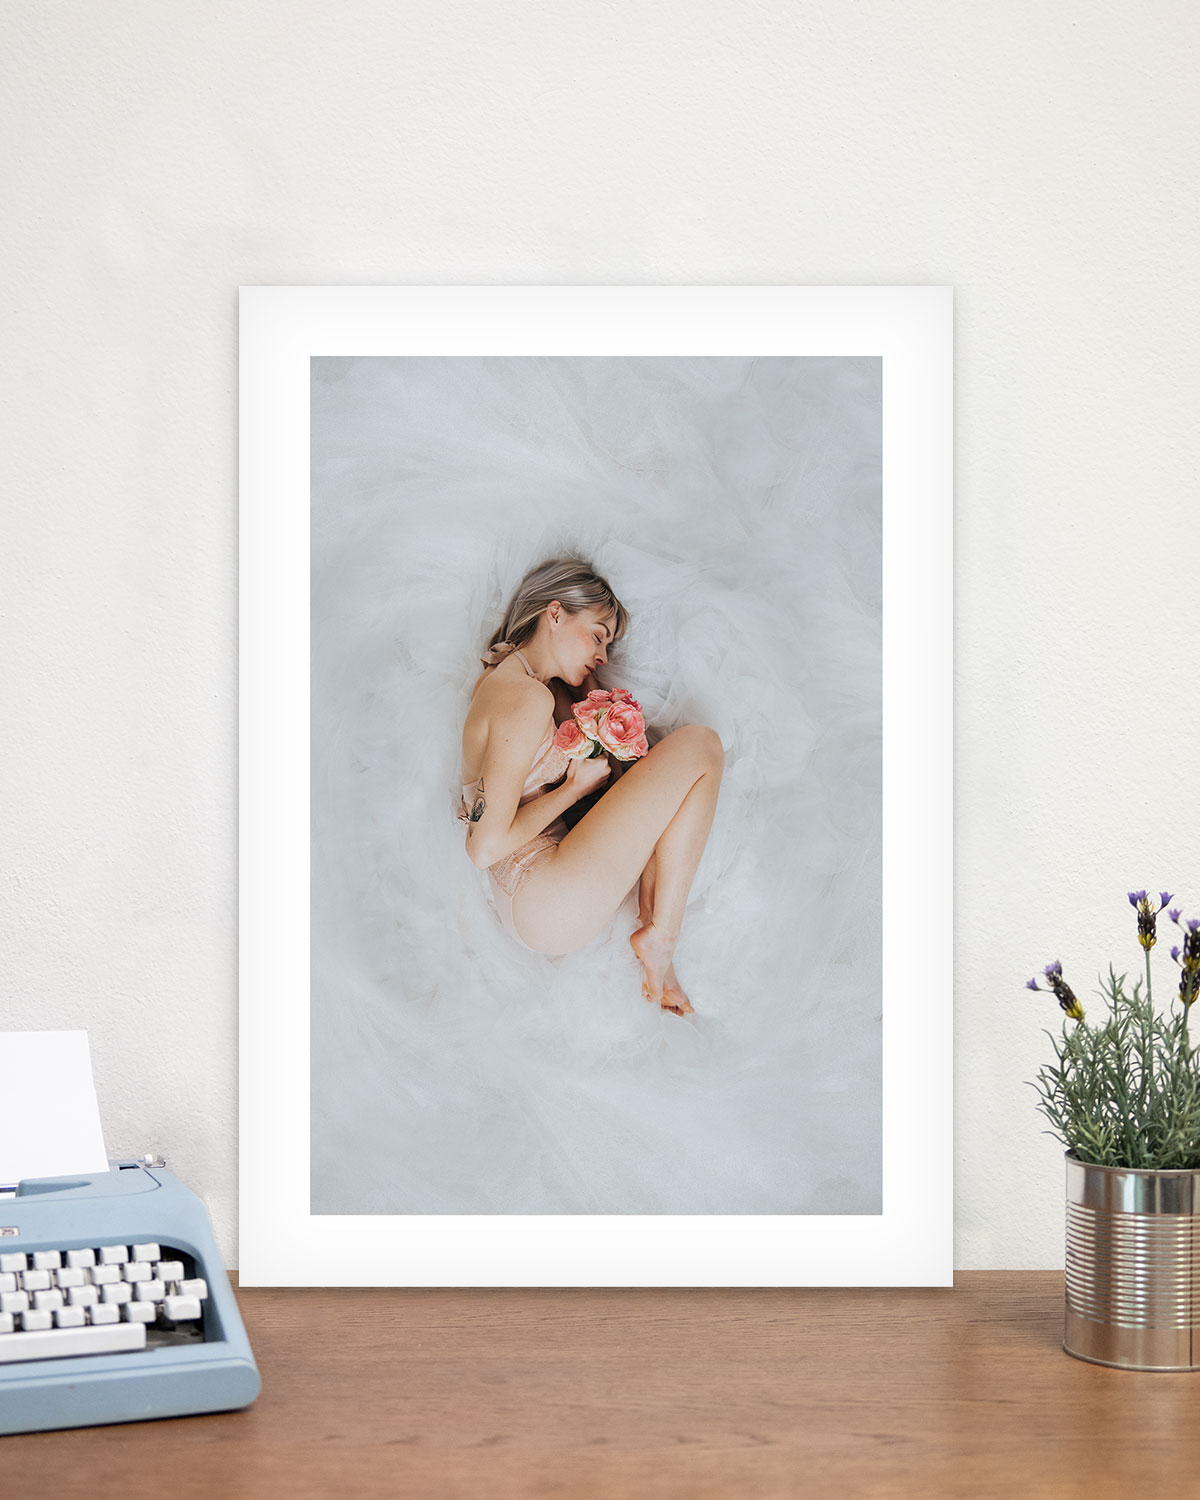 Dreamer - Fine Art Print - zuparino - Shop - zuparino - NZUP-008-05